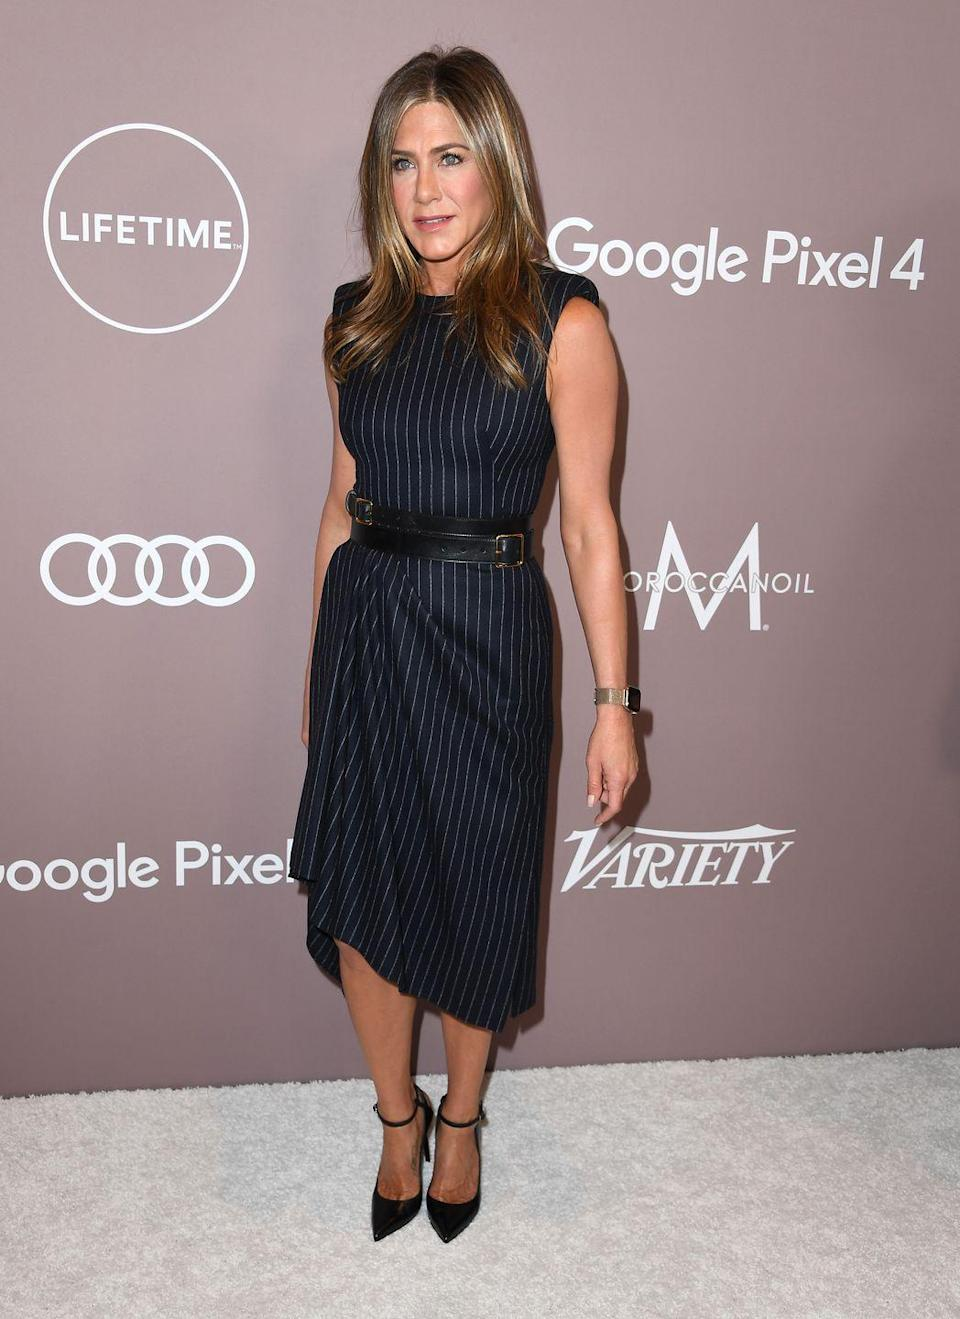 <p>Jennifer didn't love using a jump rope when Azubuike first tried her out on it because she thought it was challenging, her trainer told Women's Health. But she kept at it. 'I just made her keep on doing it, and now she's great at it,' he said.</p>